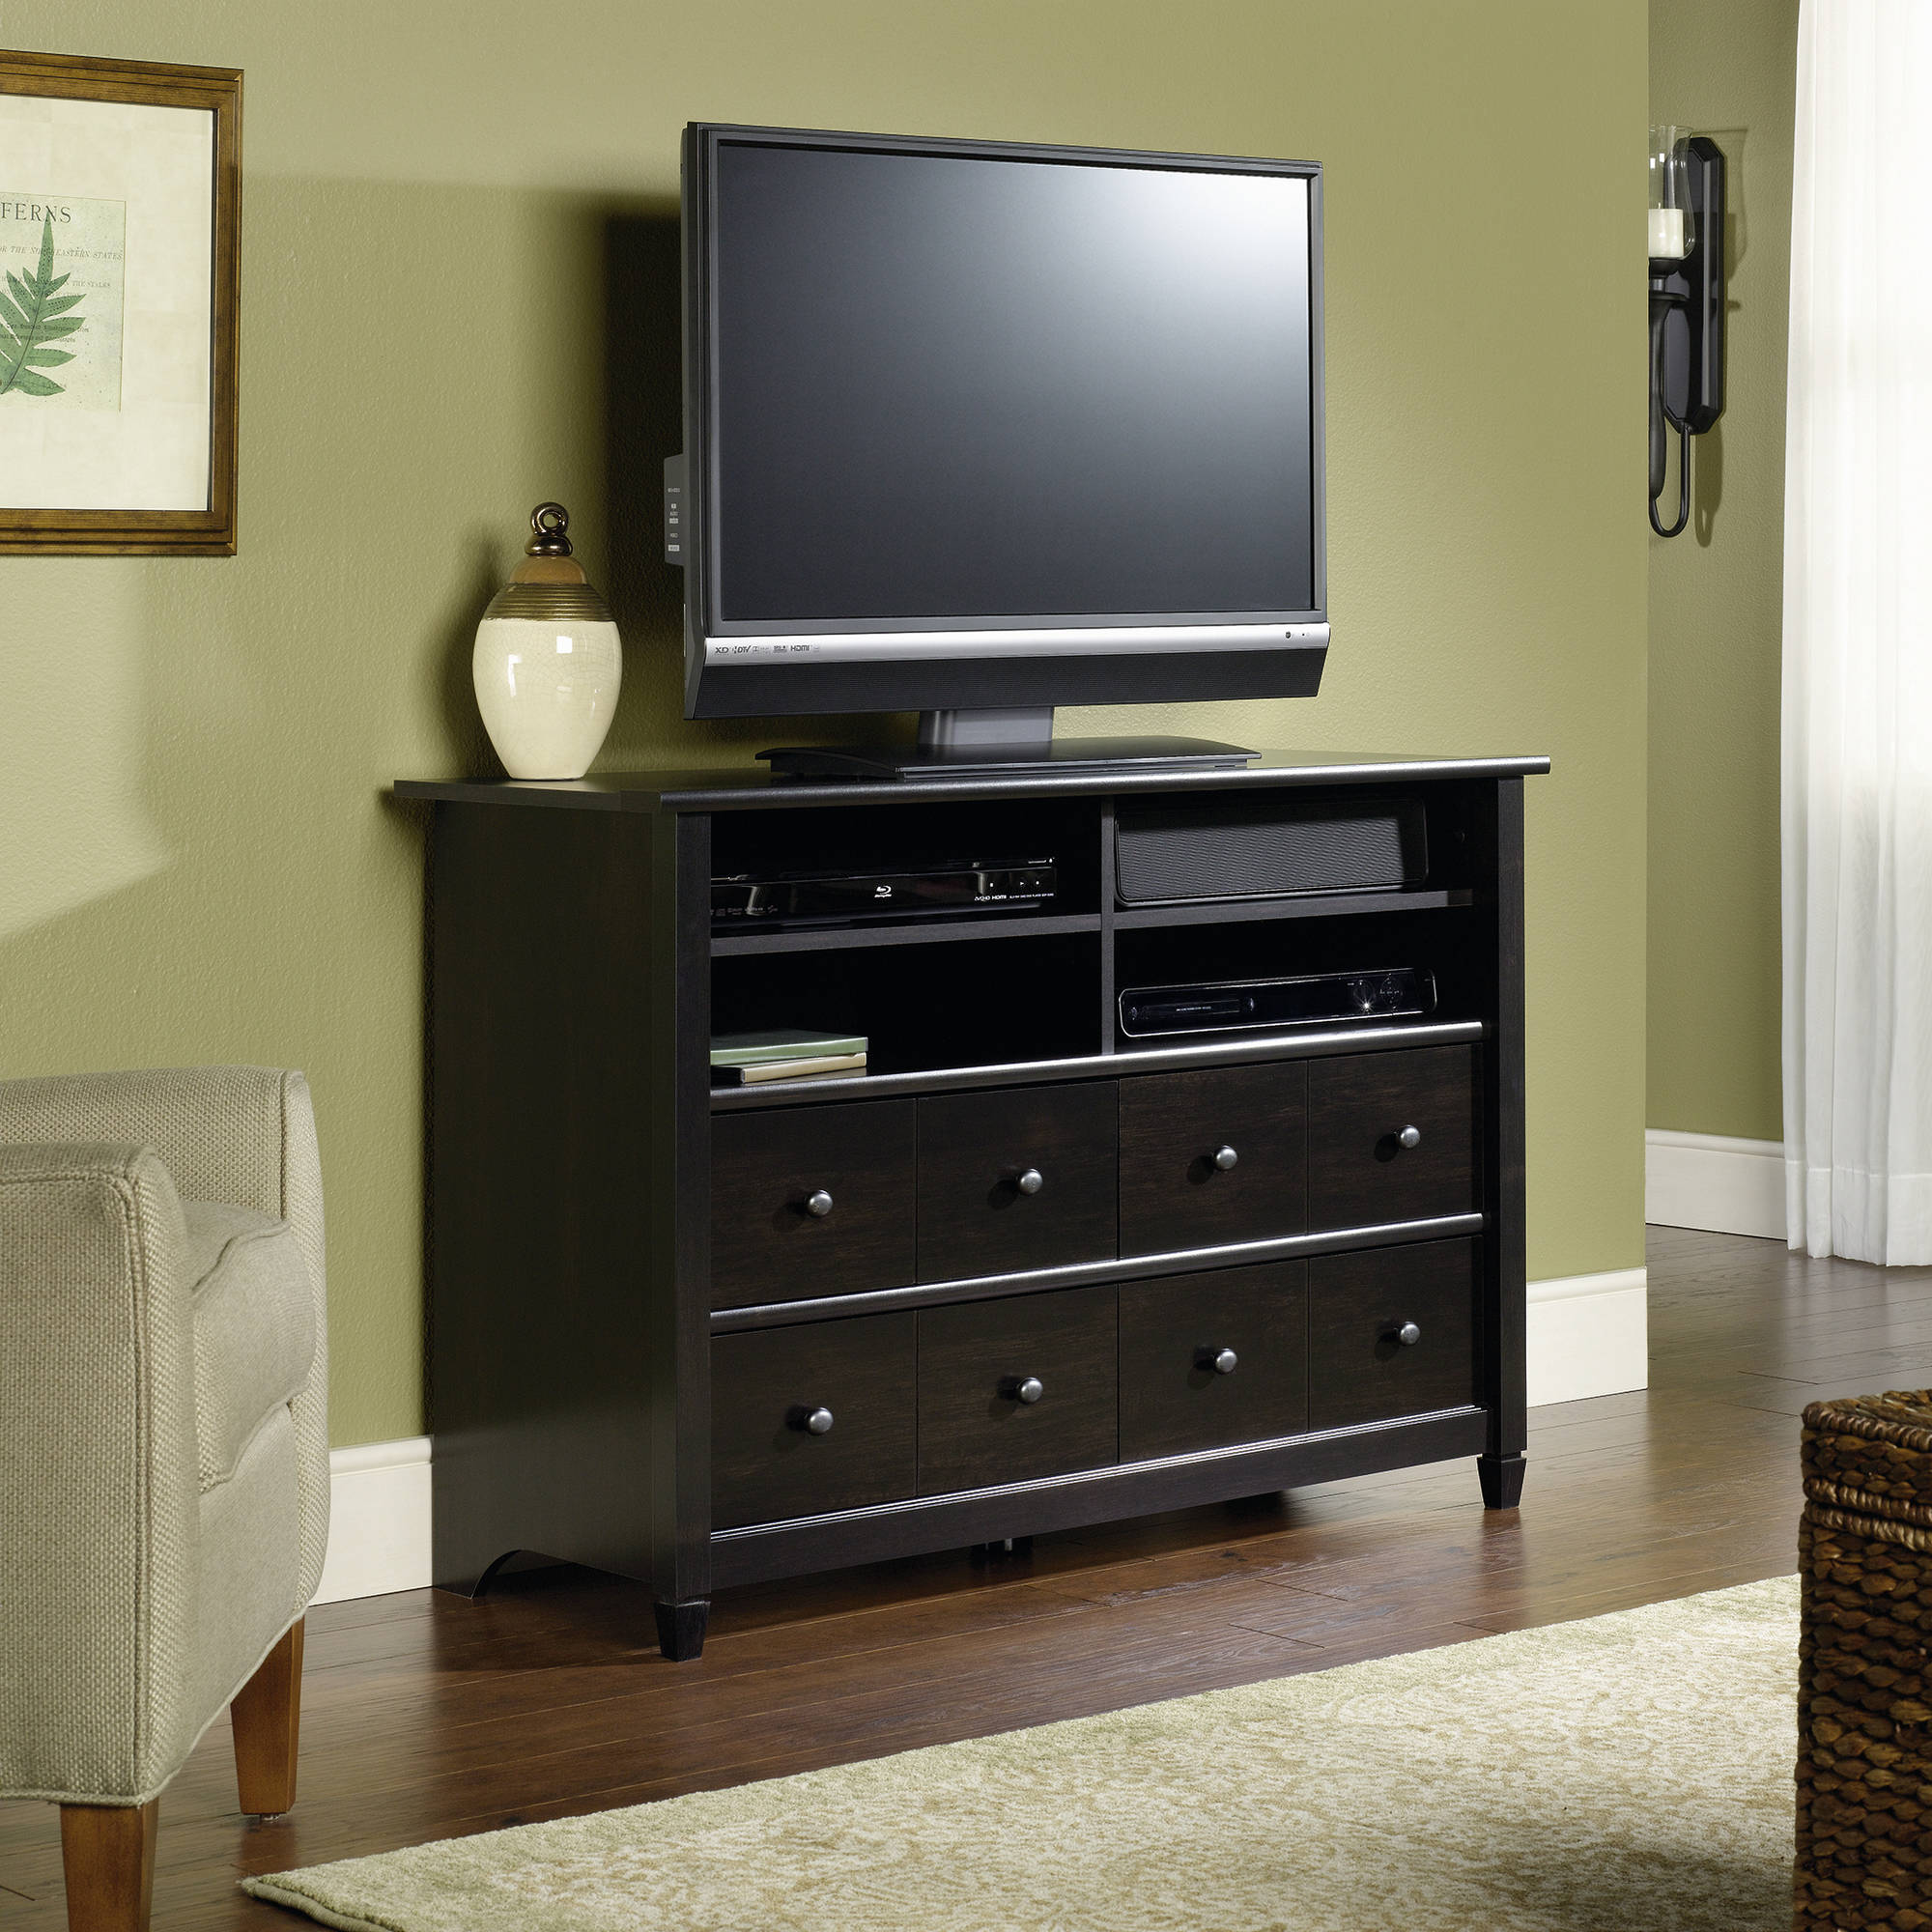 "Sauder Edge Water Tall TV Stand for TVs up to 45"", Estate Black"